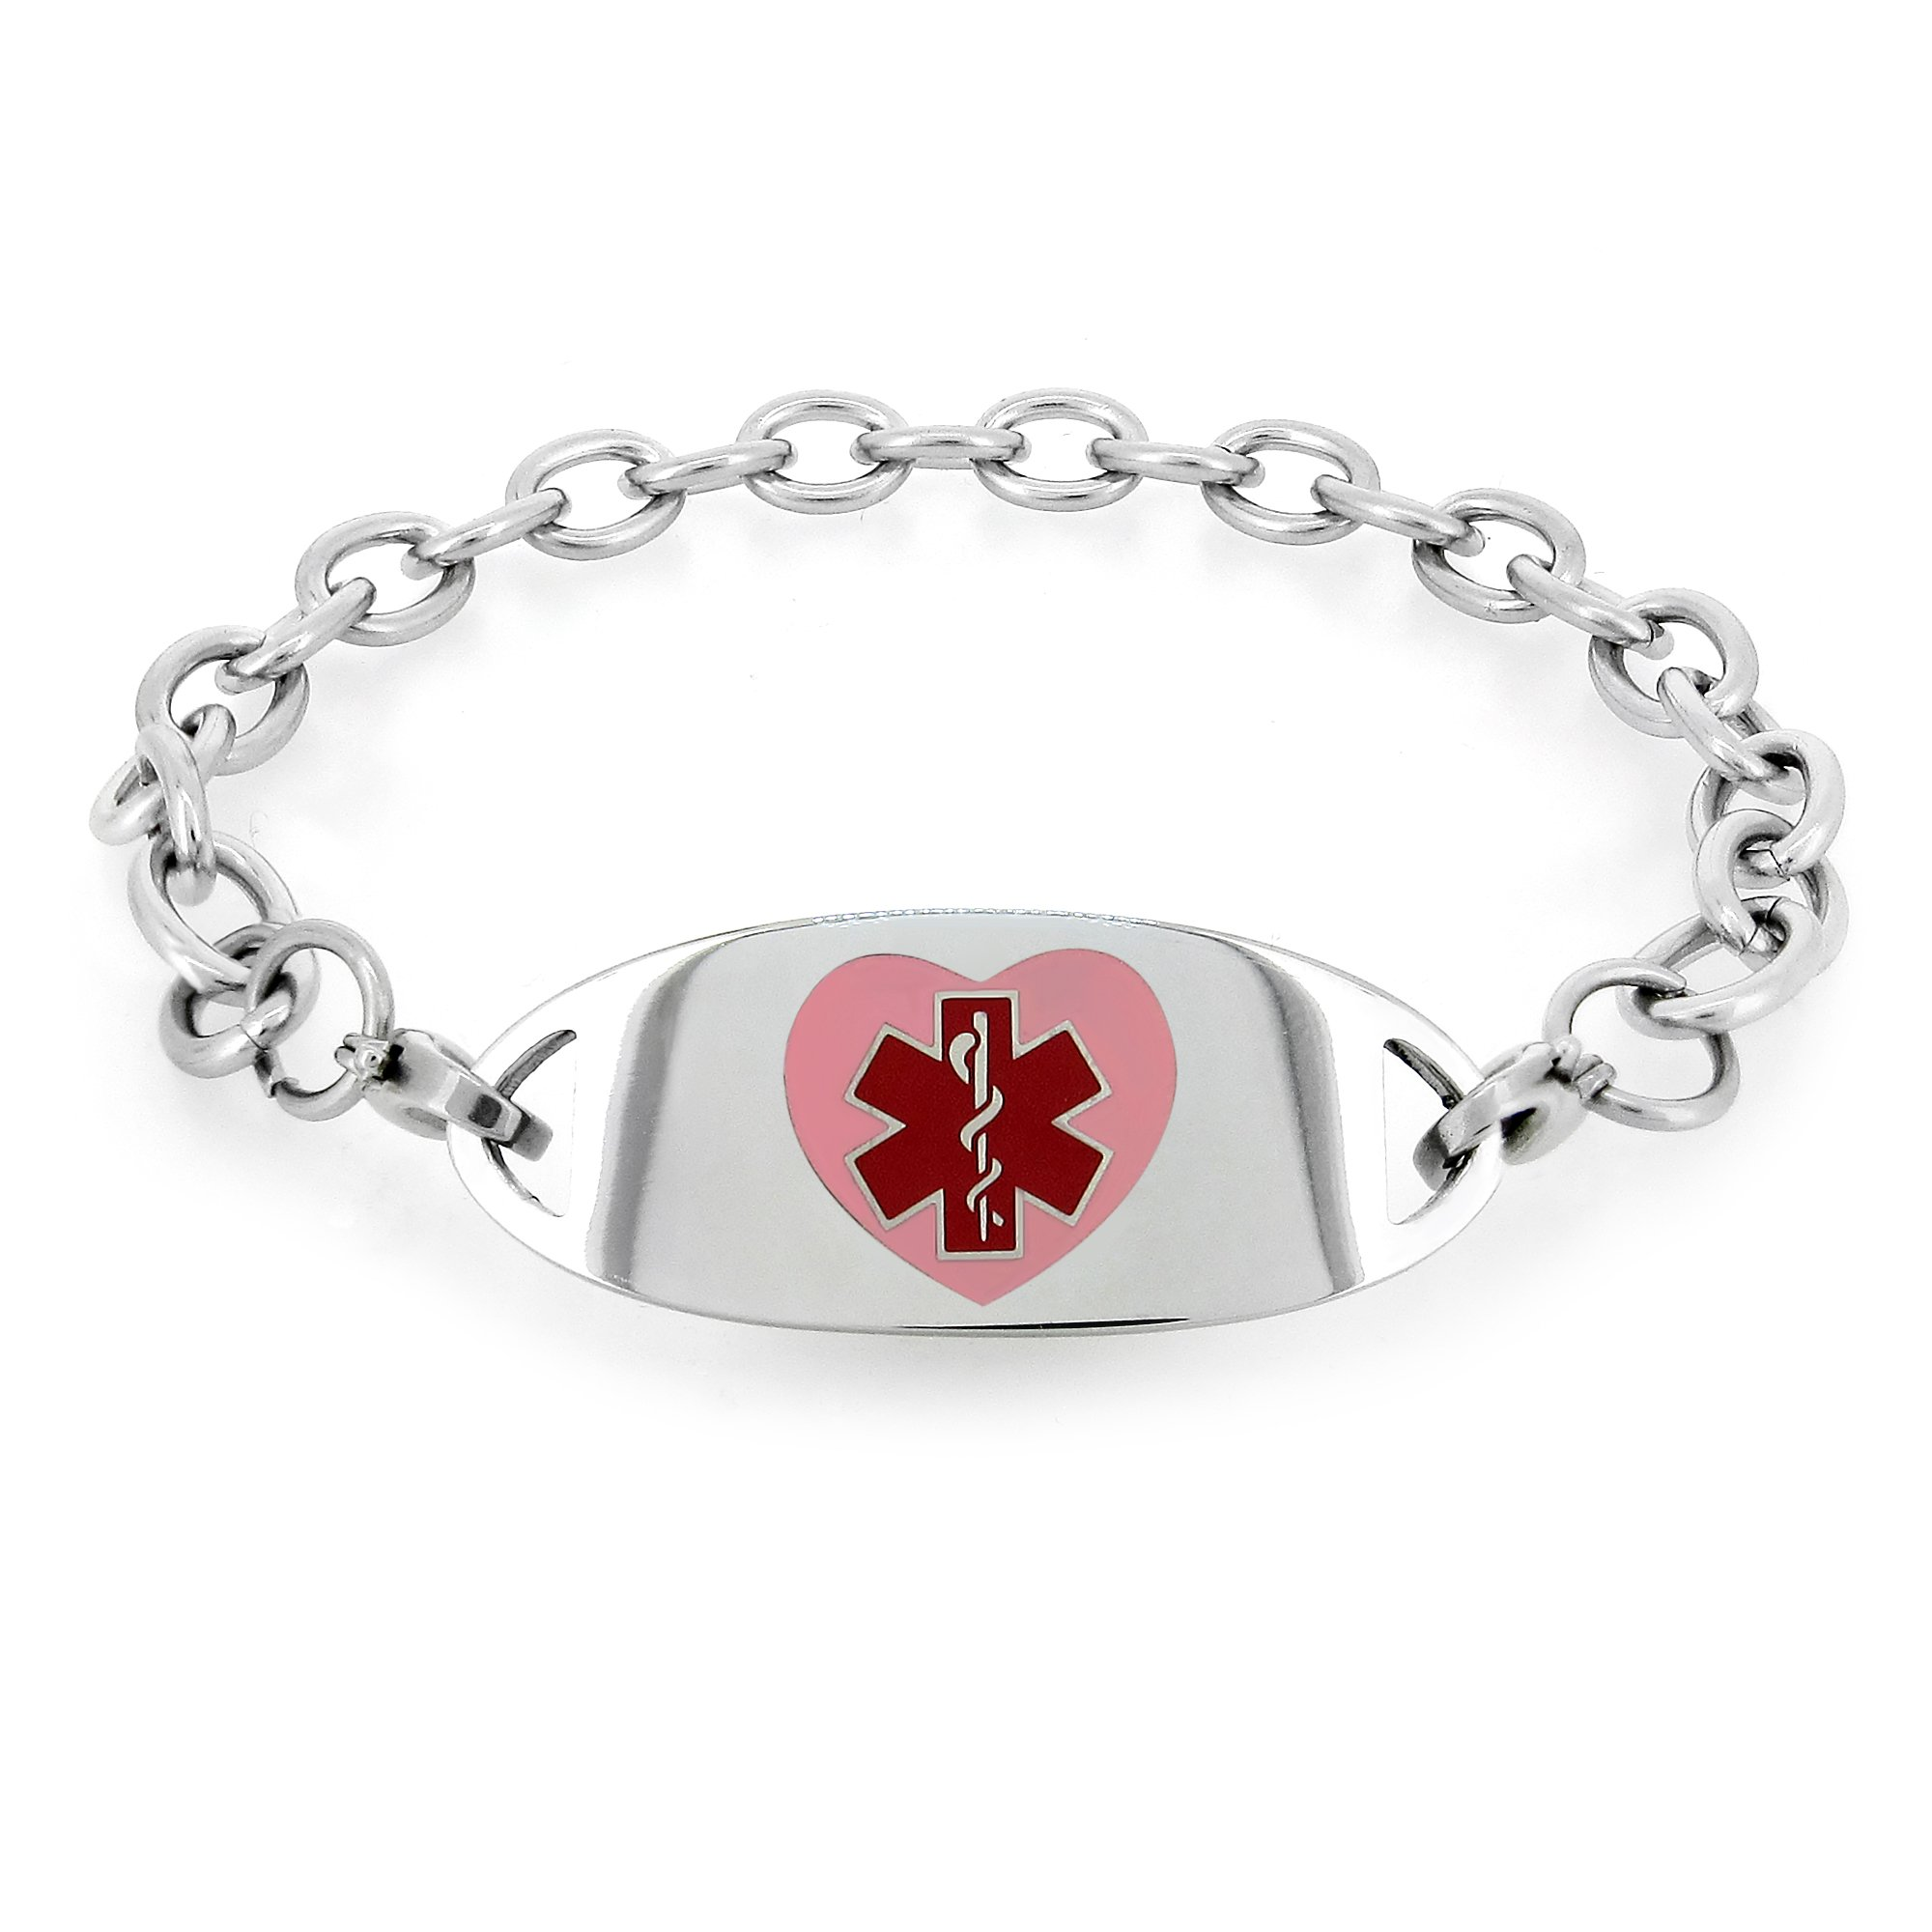 Sterling Silver Round Enameled Medical Identification Emergency Charm